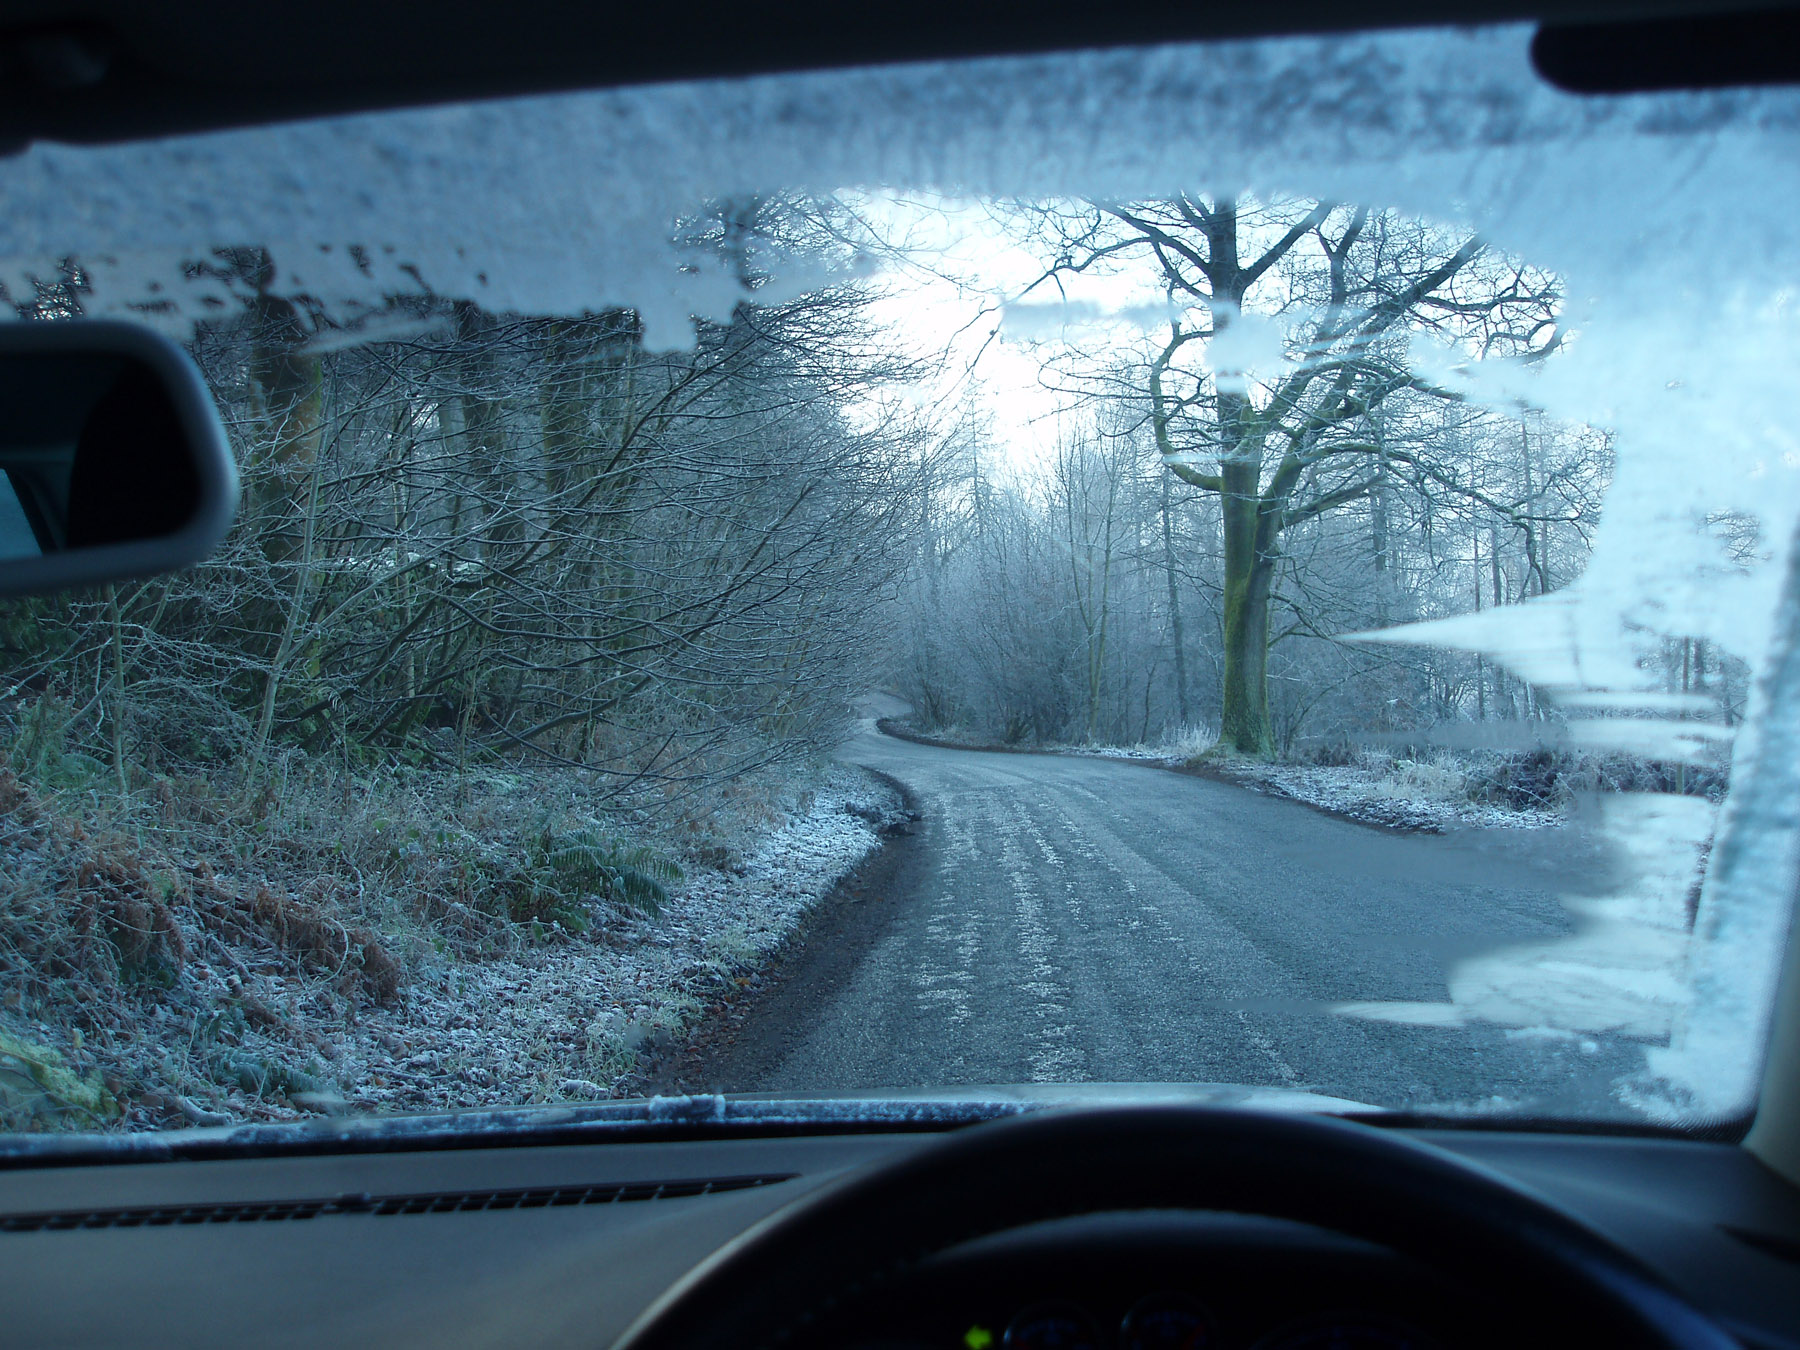 Platts hyundai used car dealership in high wycombe - Winter Driving Tips To Make Your Winter Journey As Safe As Possible